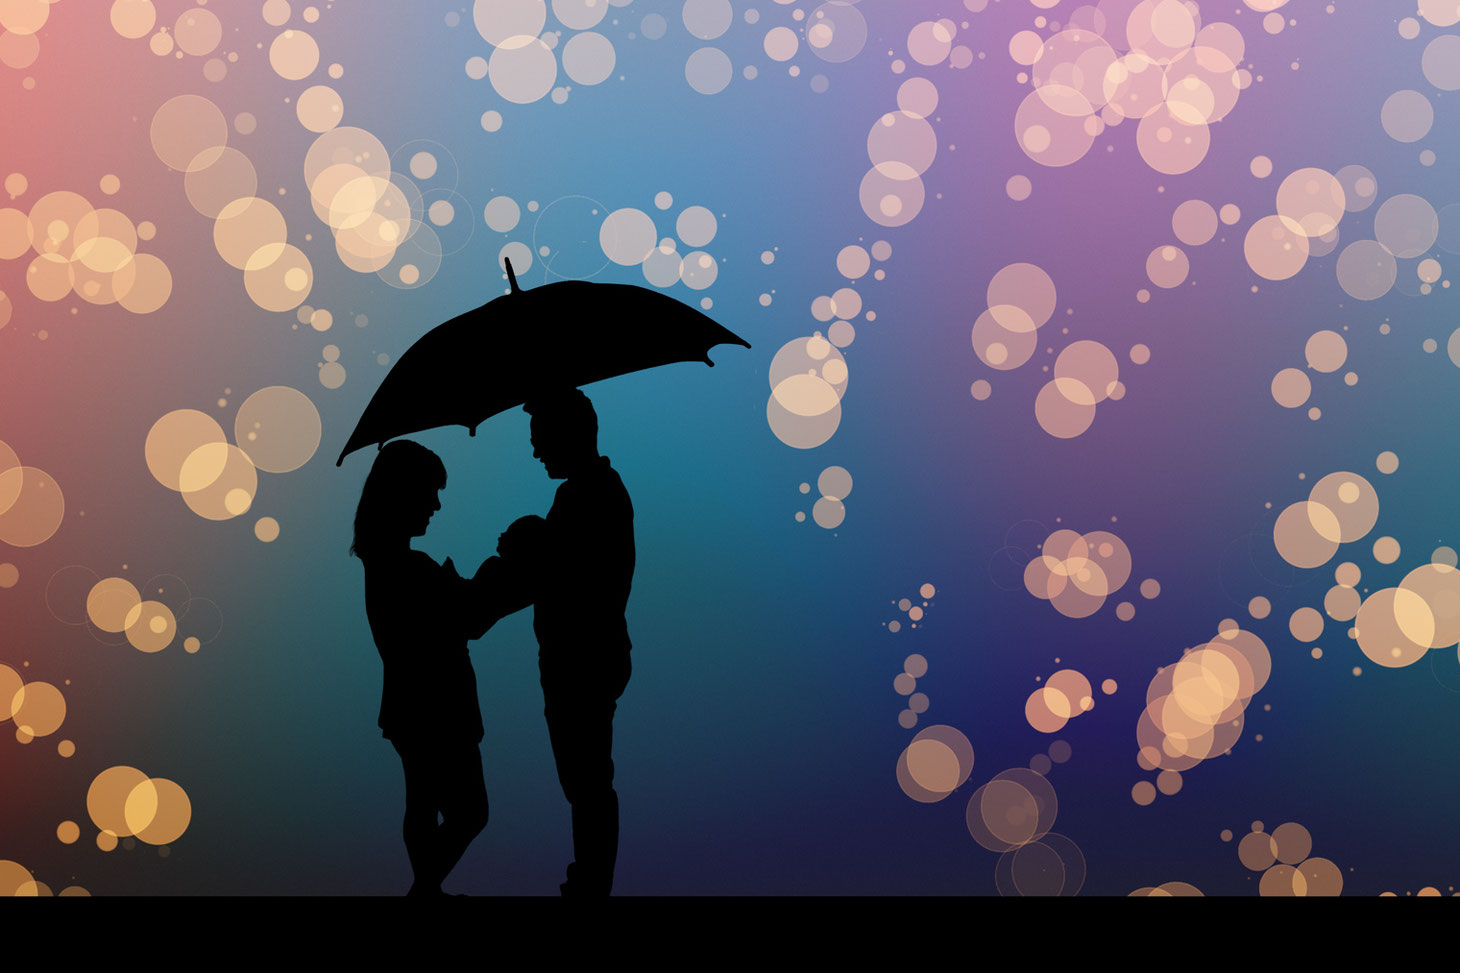 silhouettes of mom, dad, and small baby with an umbrella. Background is an out of focus rainbow. Parents are holding an umbrella shielding them from dropping gold glitter.